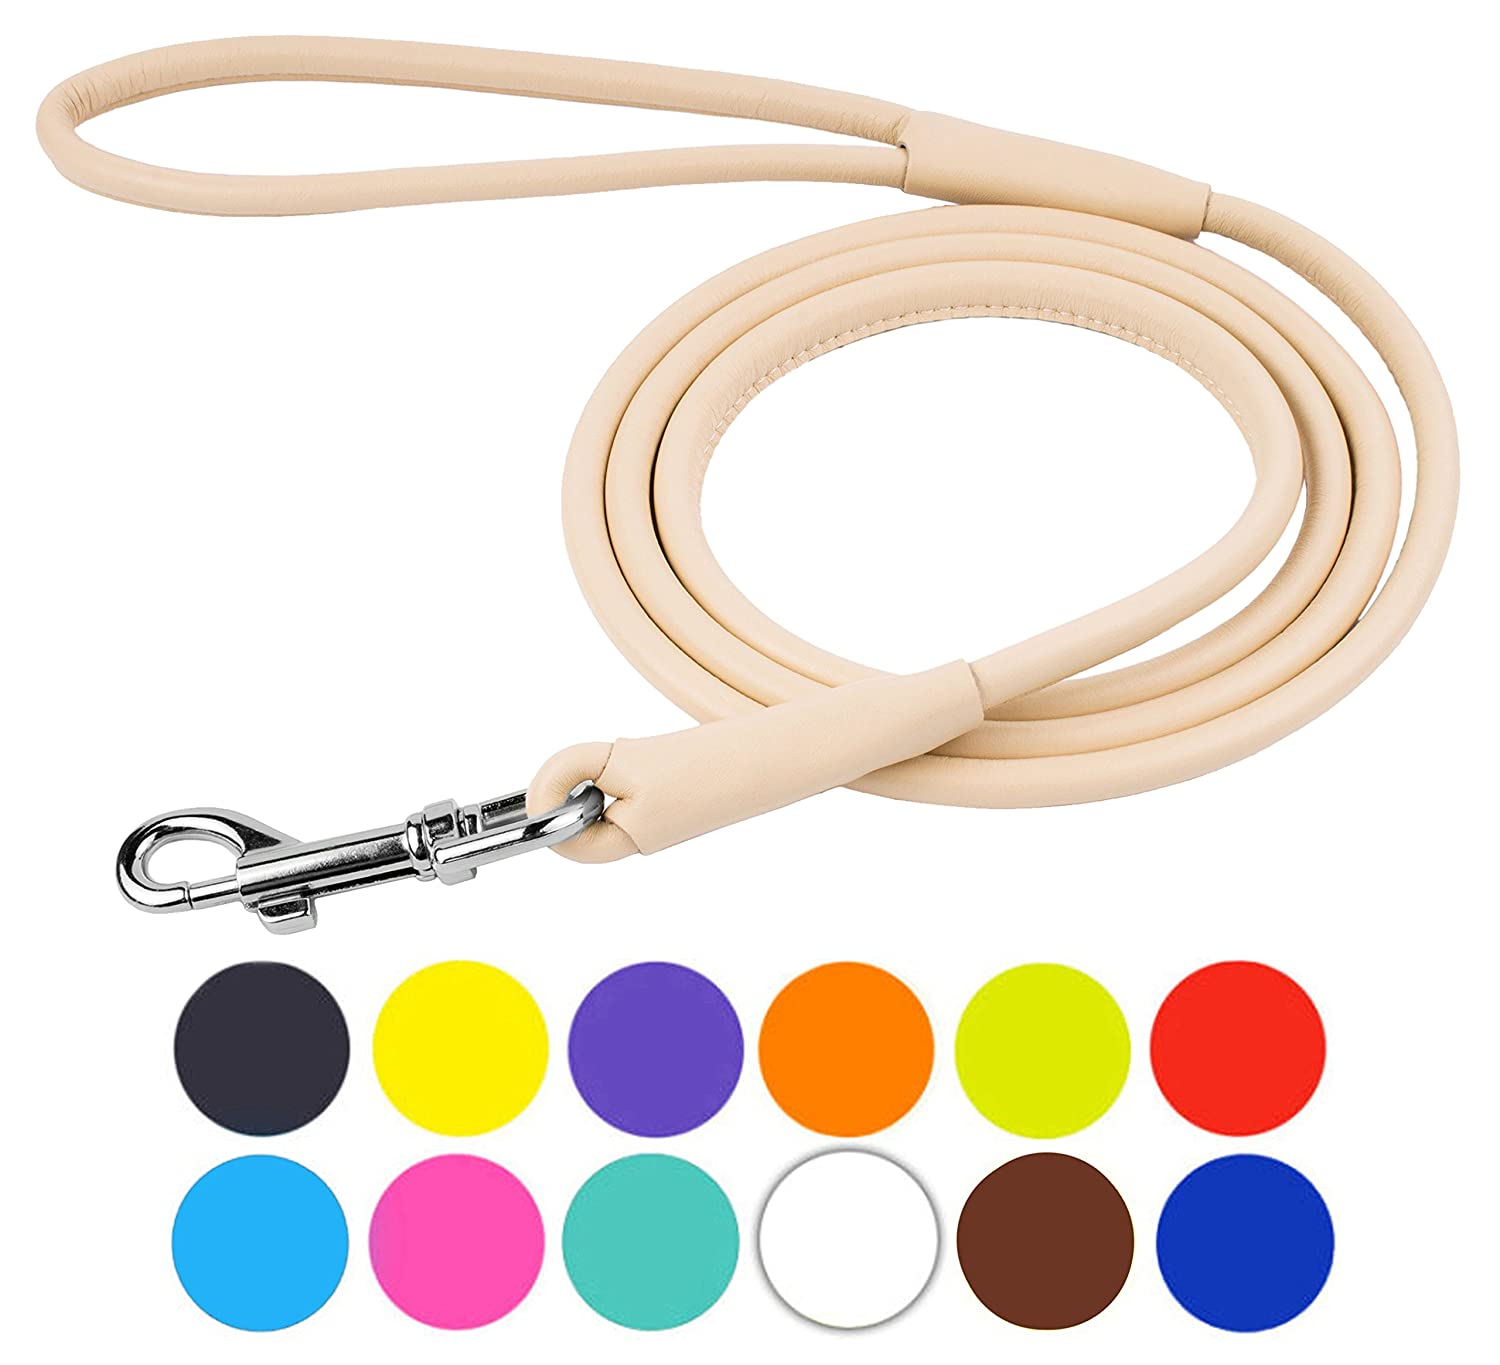 Beige Size S 6ft Beige Size S 6ft CollarDirect Rolled Leather Dog Leash 4ft, Soft Padded Training Leather Dog Lead 6ft, Puppy Leash Rolled Leather Small Medium Large Black bluee Red orange Green Pink White (Beige, Size S 6ft)